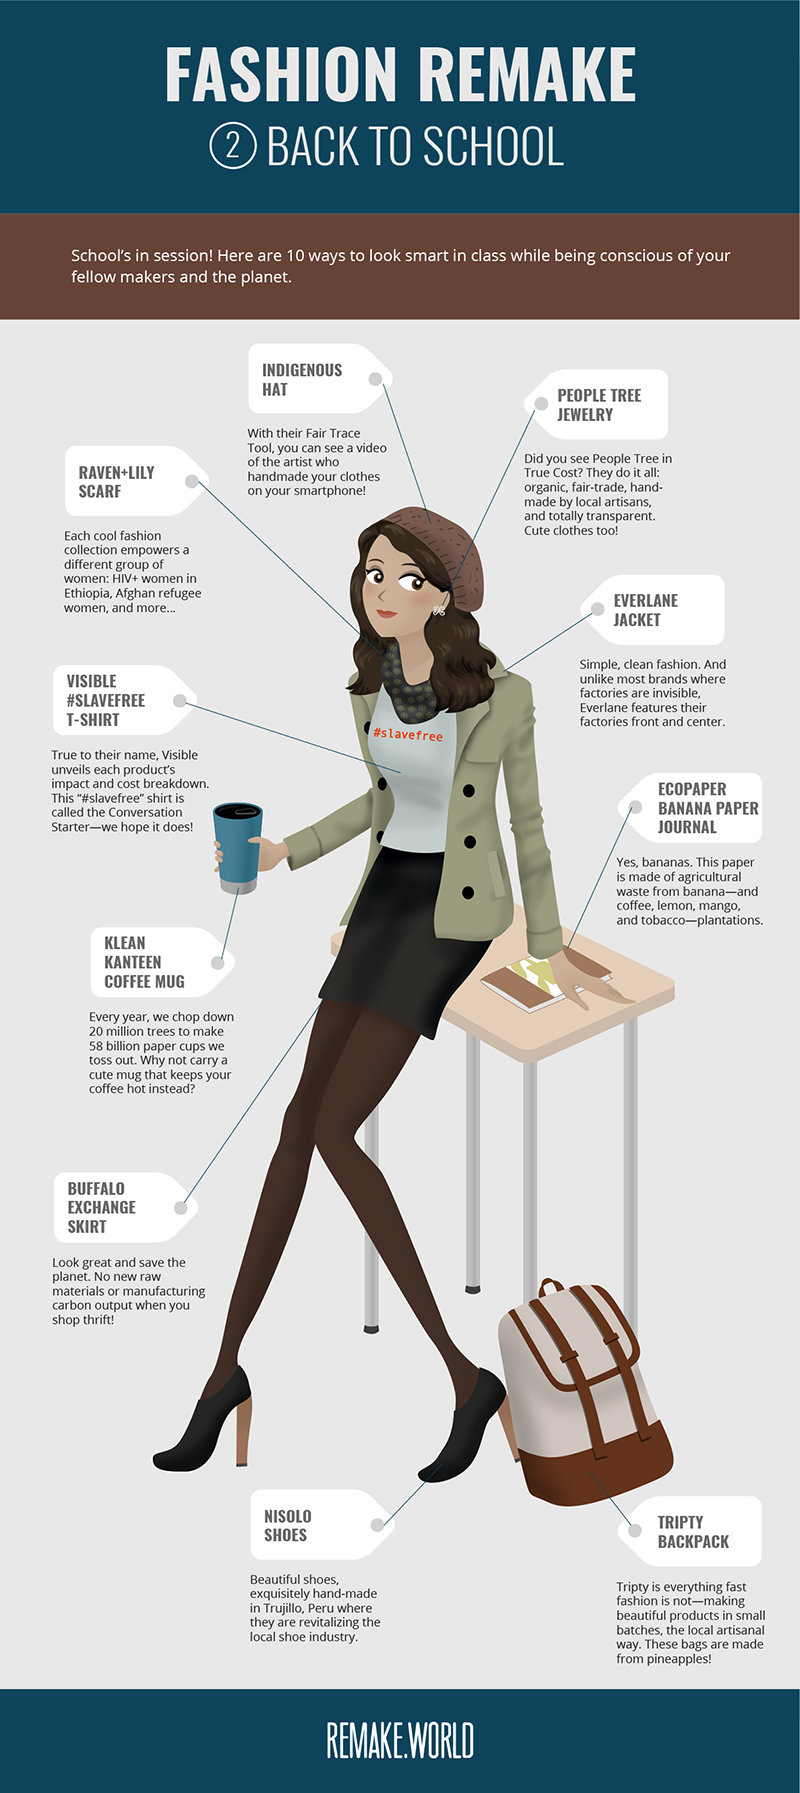 Fashion Remake: Back to School Infographic